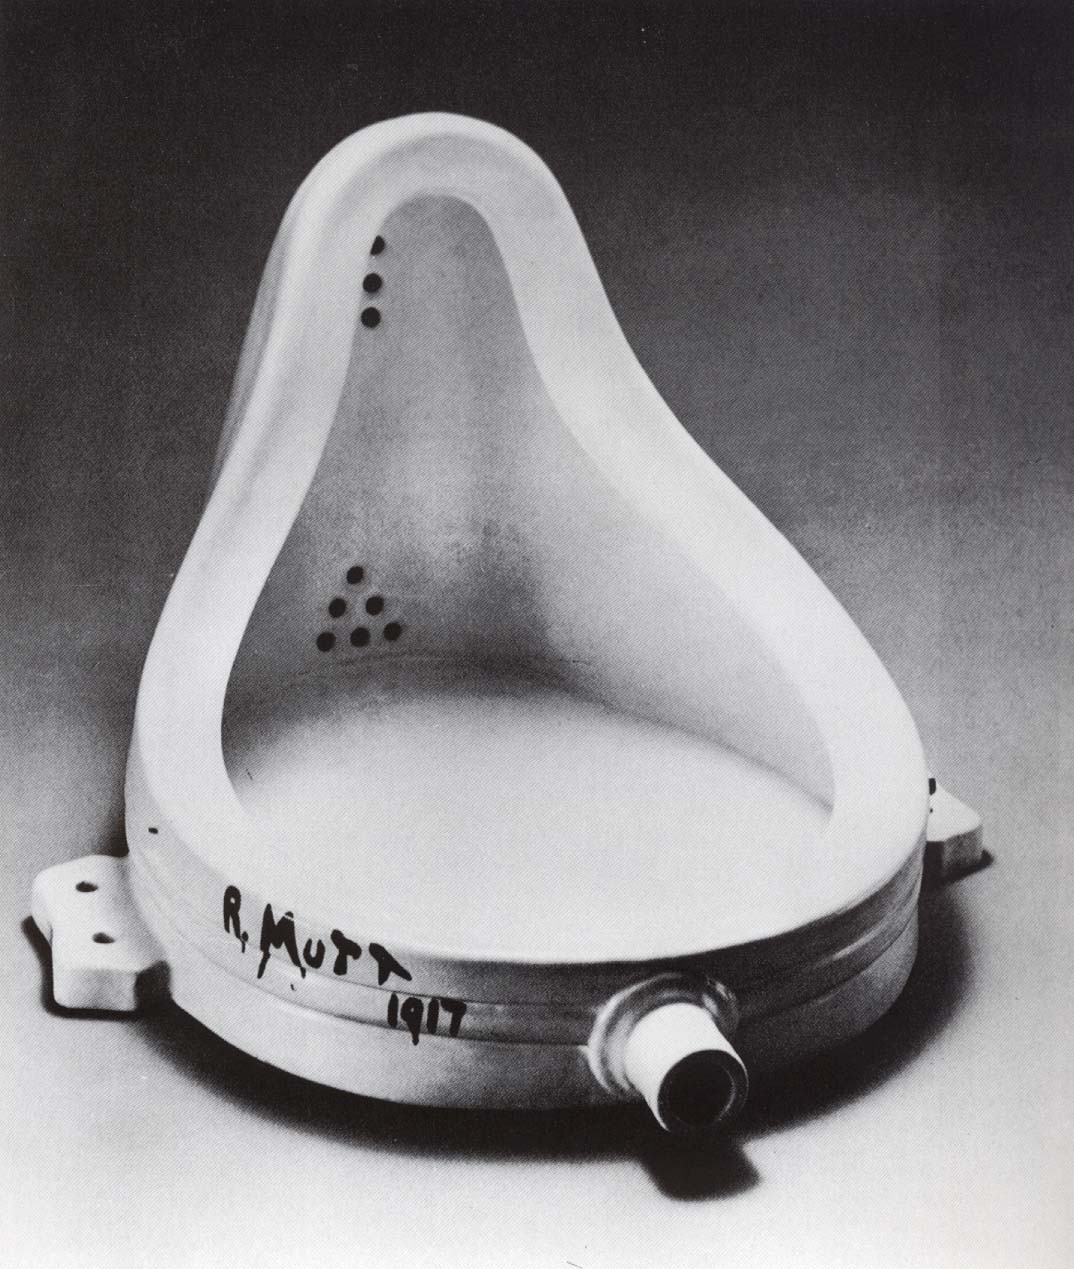 https://i2.wp.com/upload.wikimedia.org/wikipedia/commons/c/ce/Marcel_Duchamp.jpg